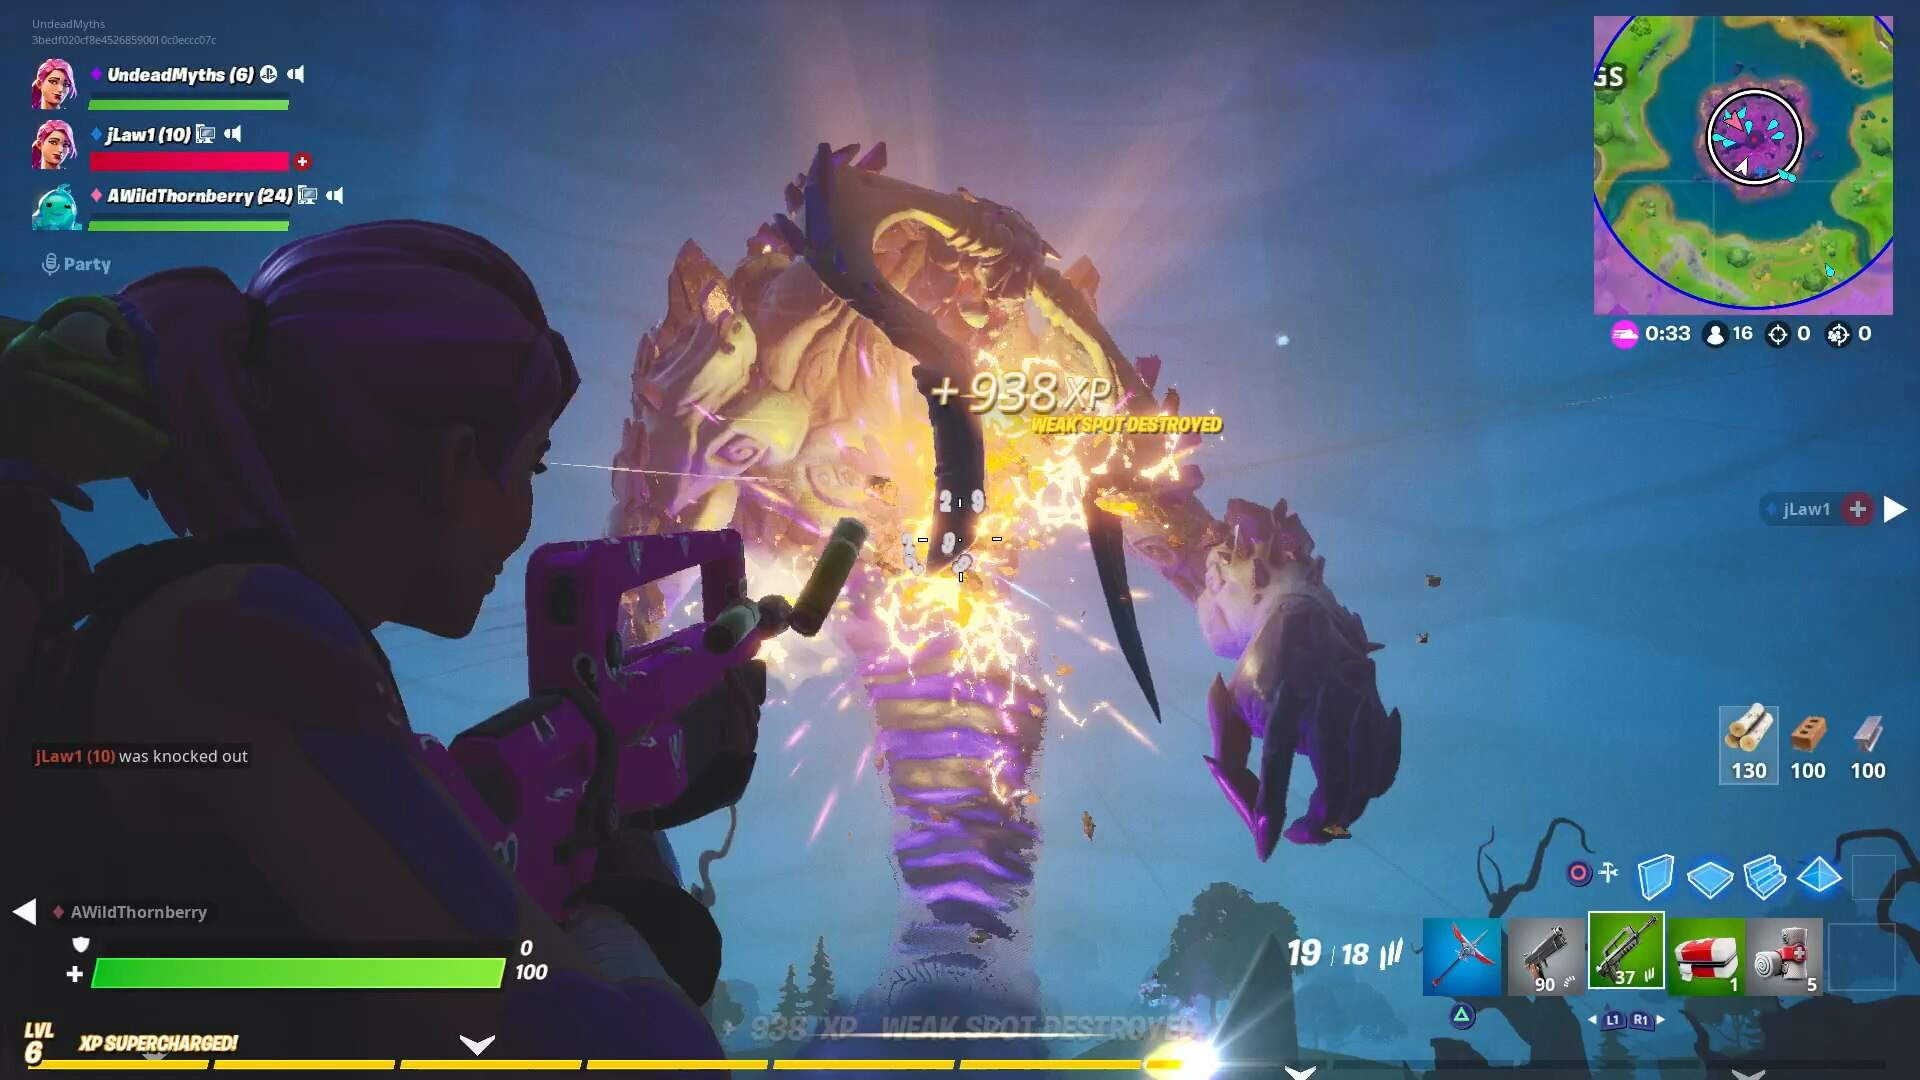 Fortnite Storm King Guide - How to Defeat Storm King Boss, All Rewards